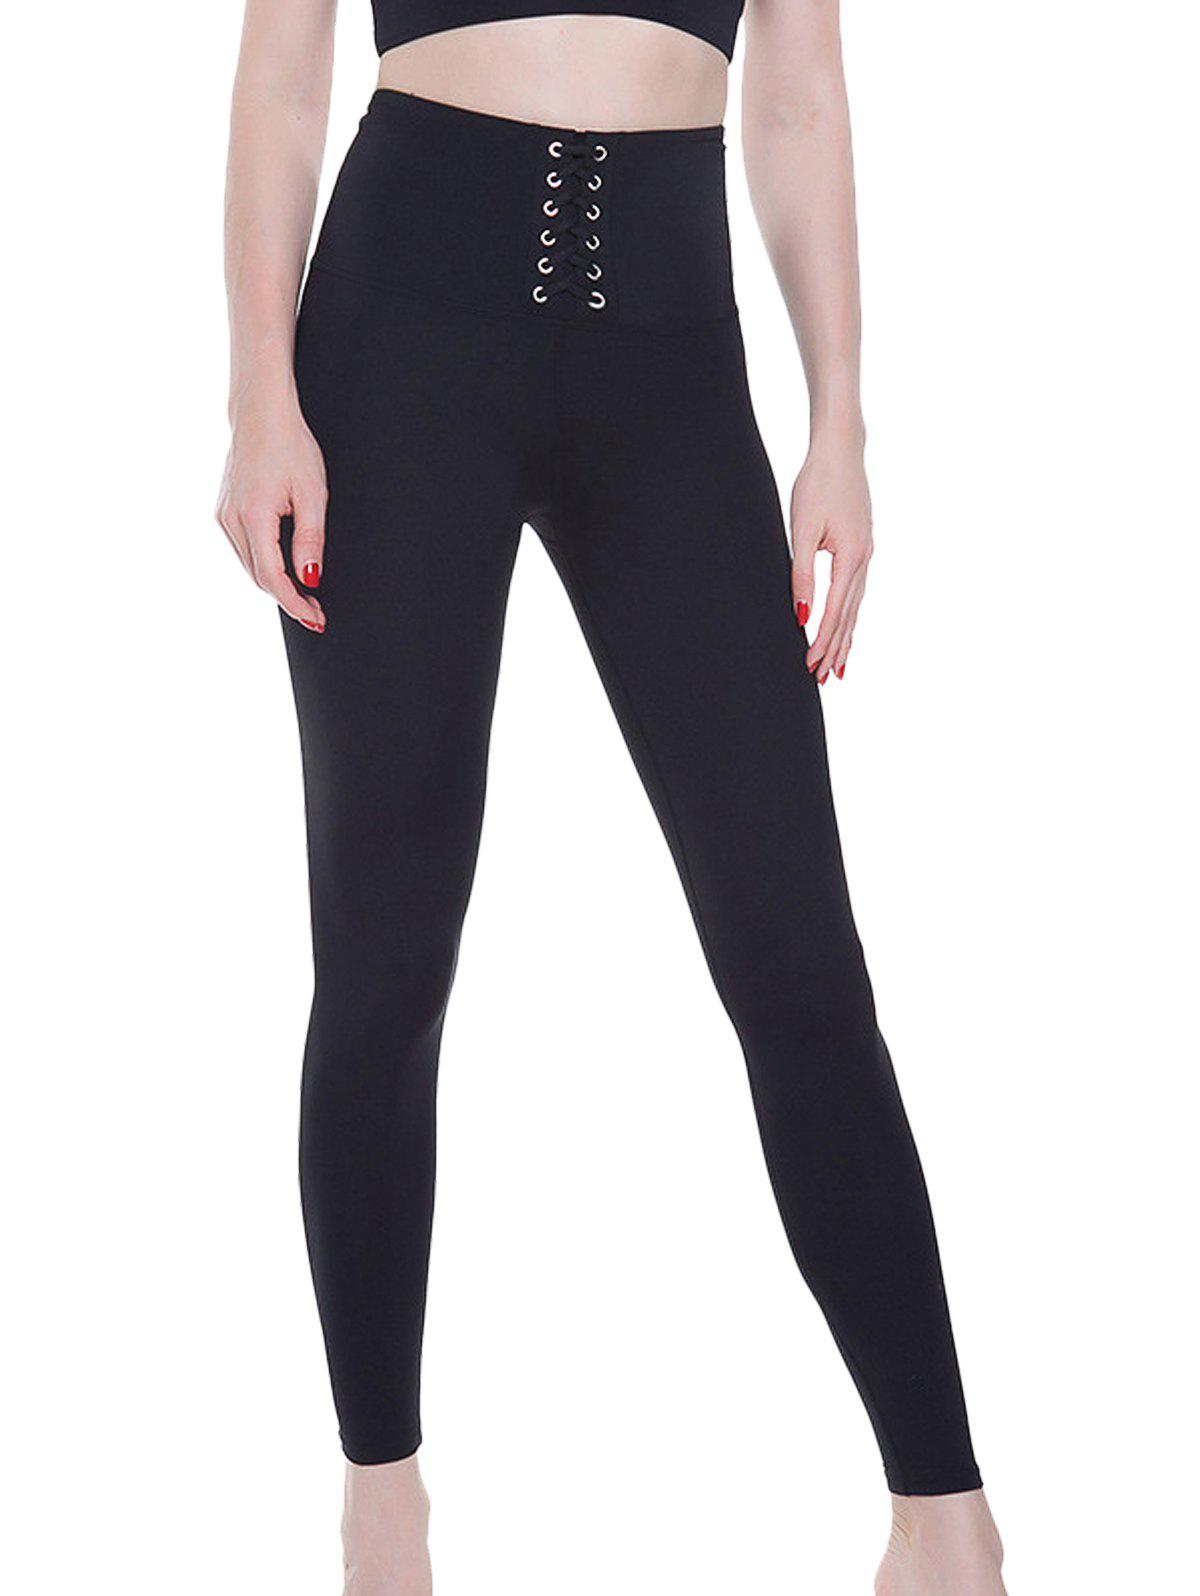 Online High Waist Strap Fitness Yoga Quick-Drying Pants